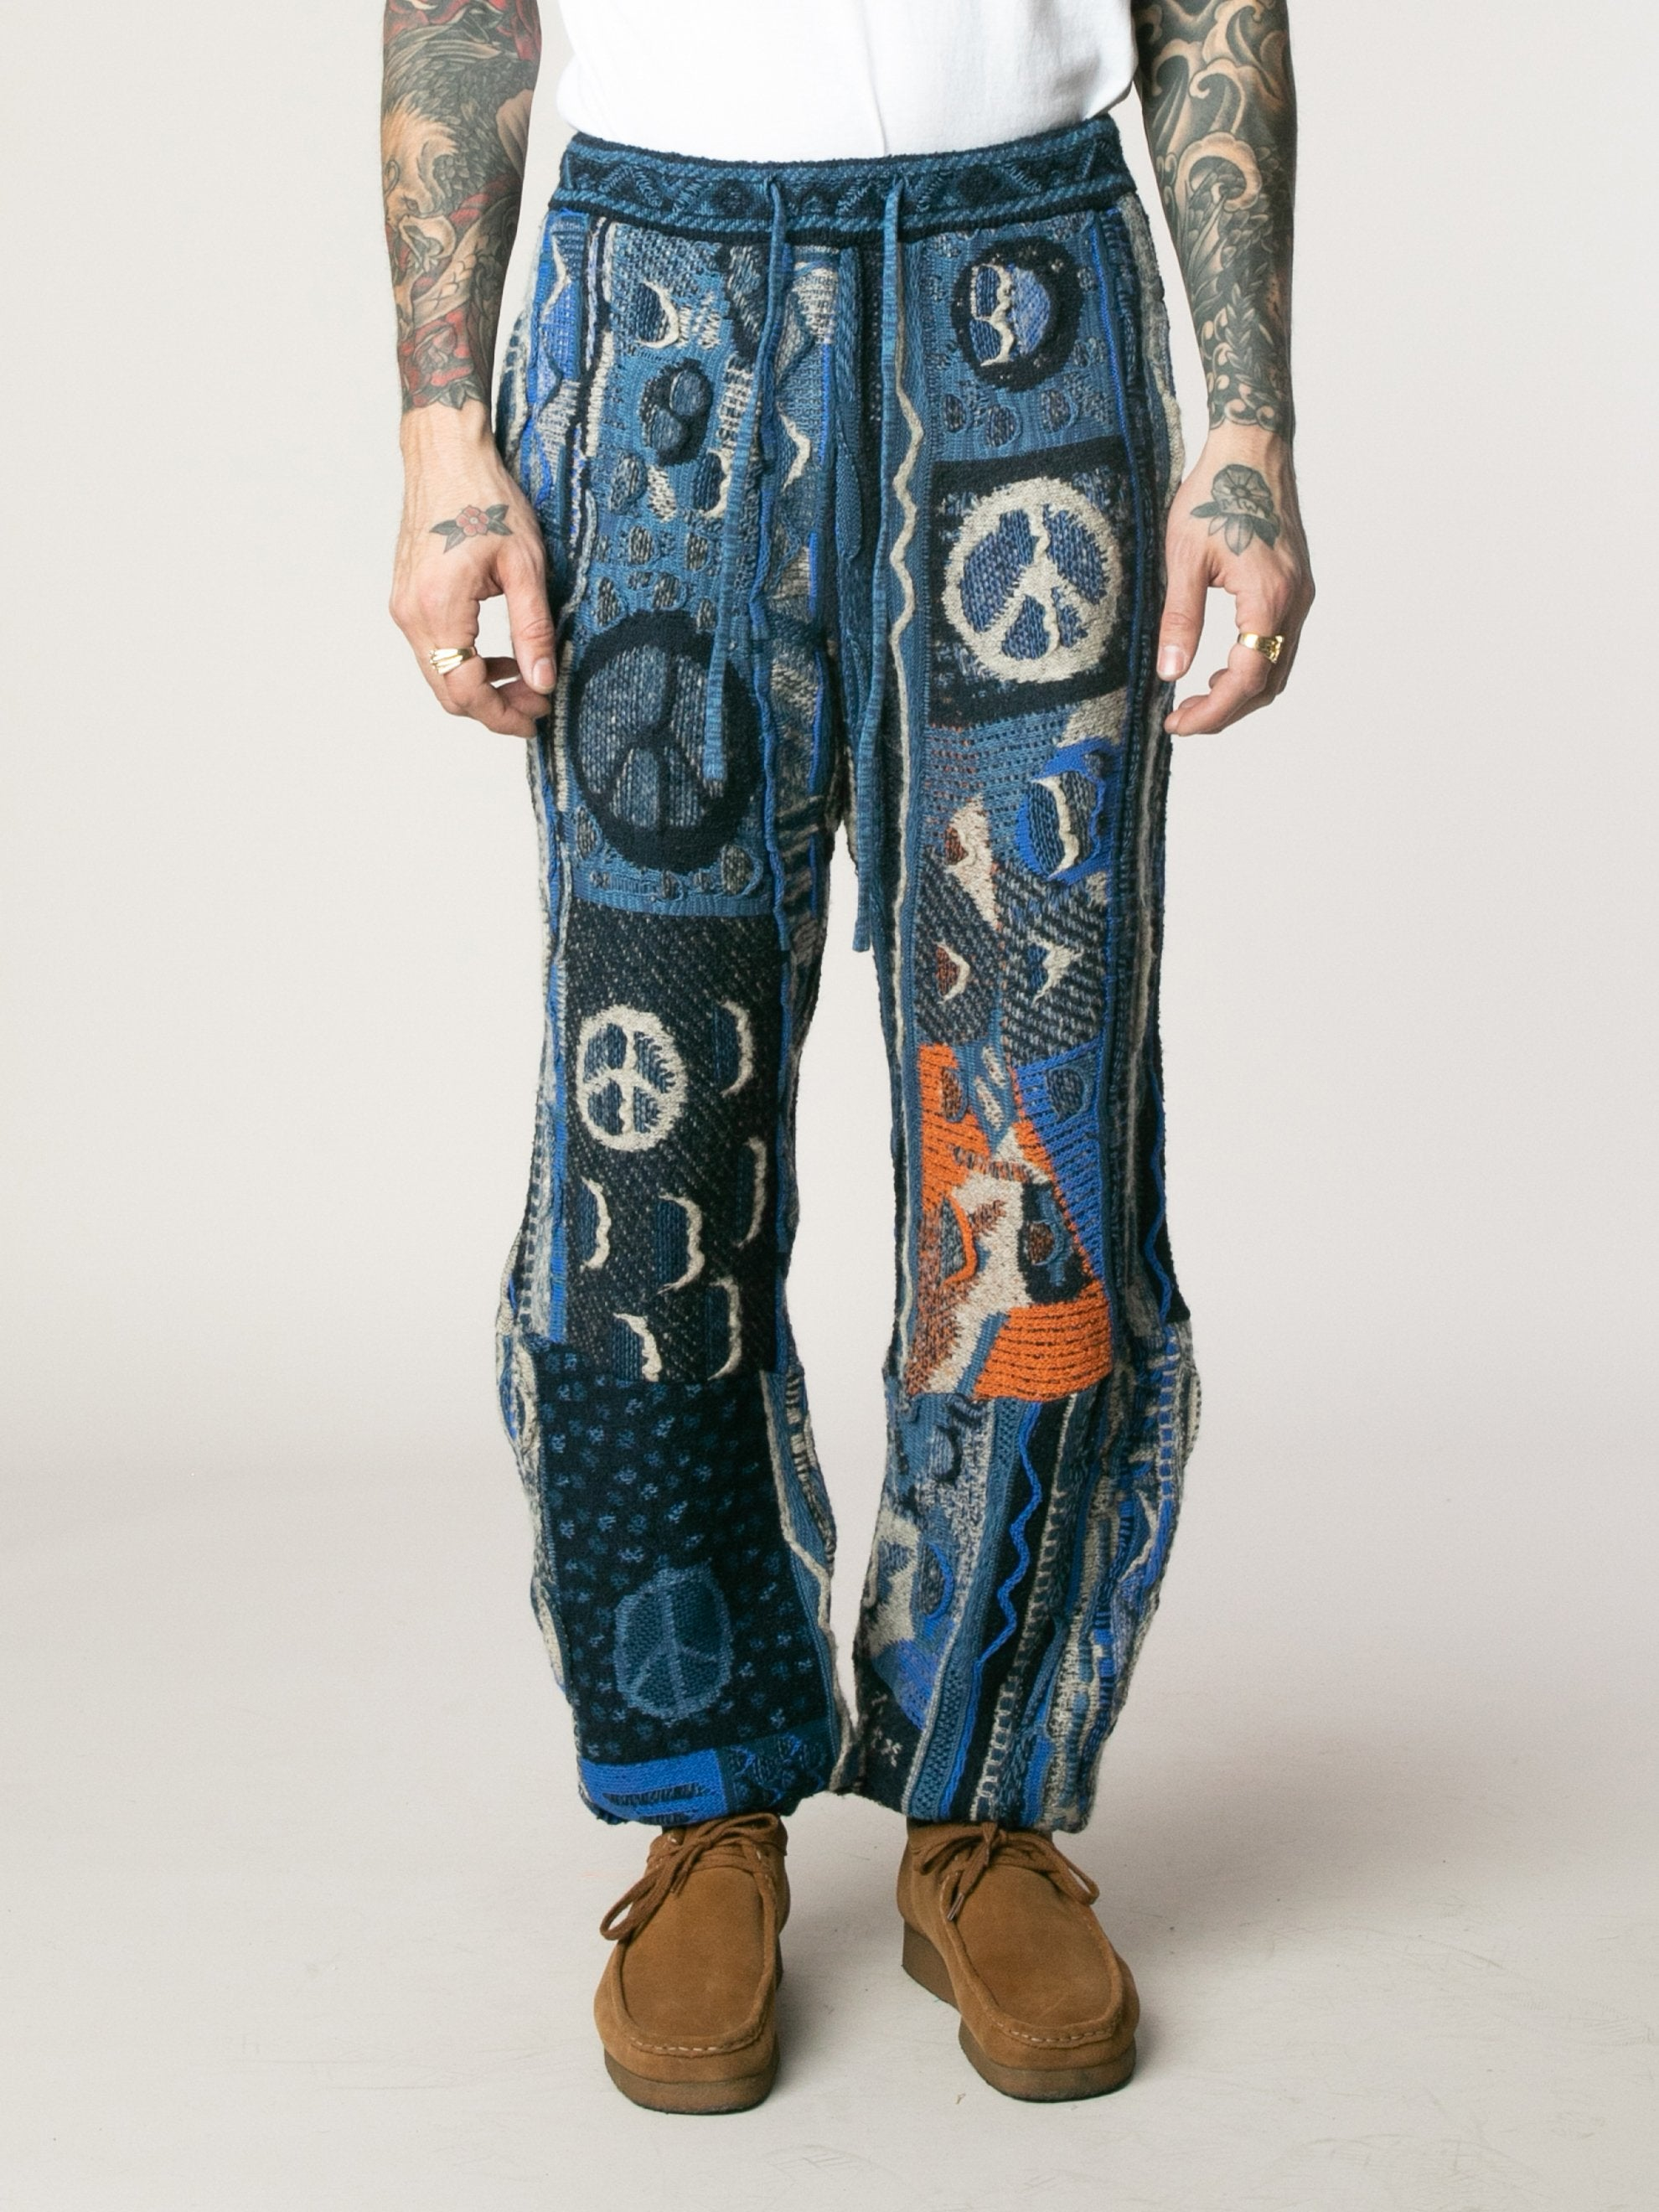 7G Boro Gaudy Knit Pants